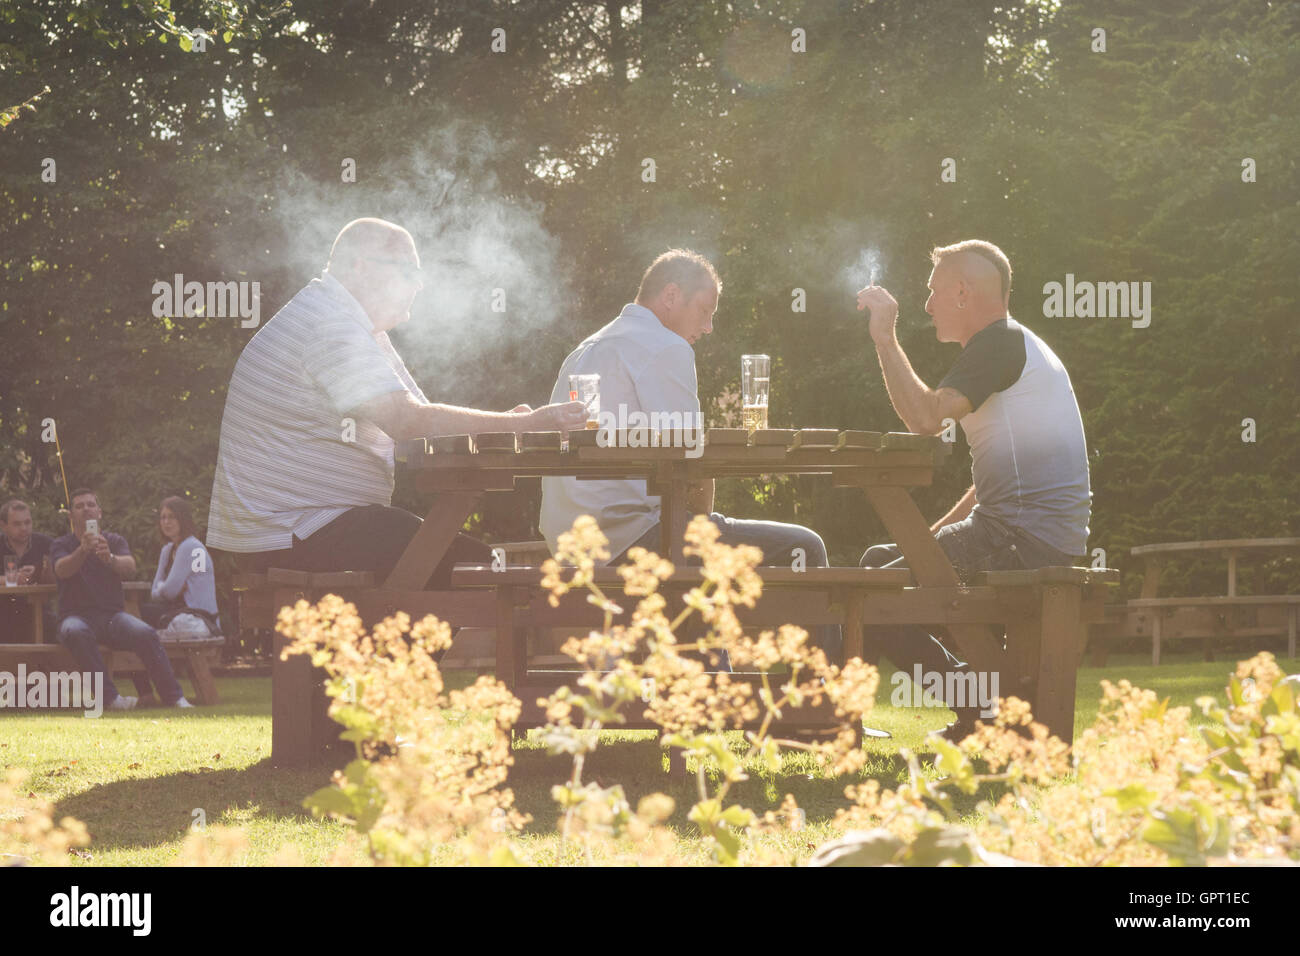 Smokers in a pub beer garden in Scotland, UK, surrounded by smoke - Stock Image